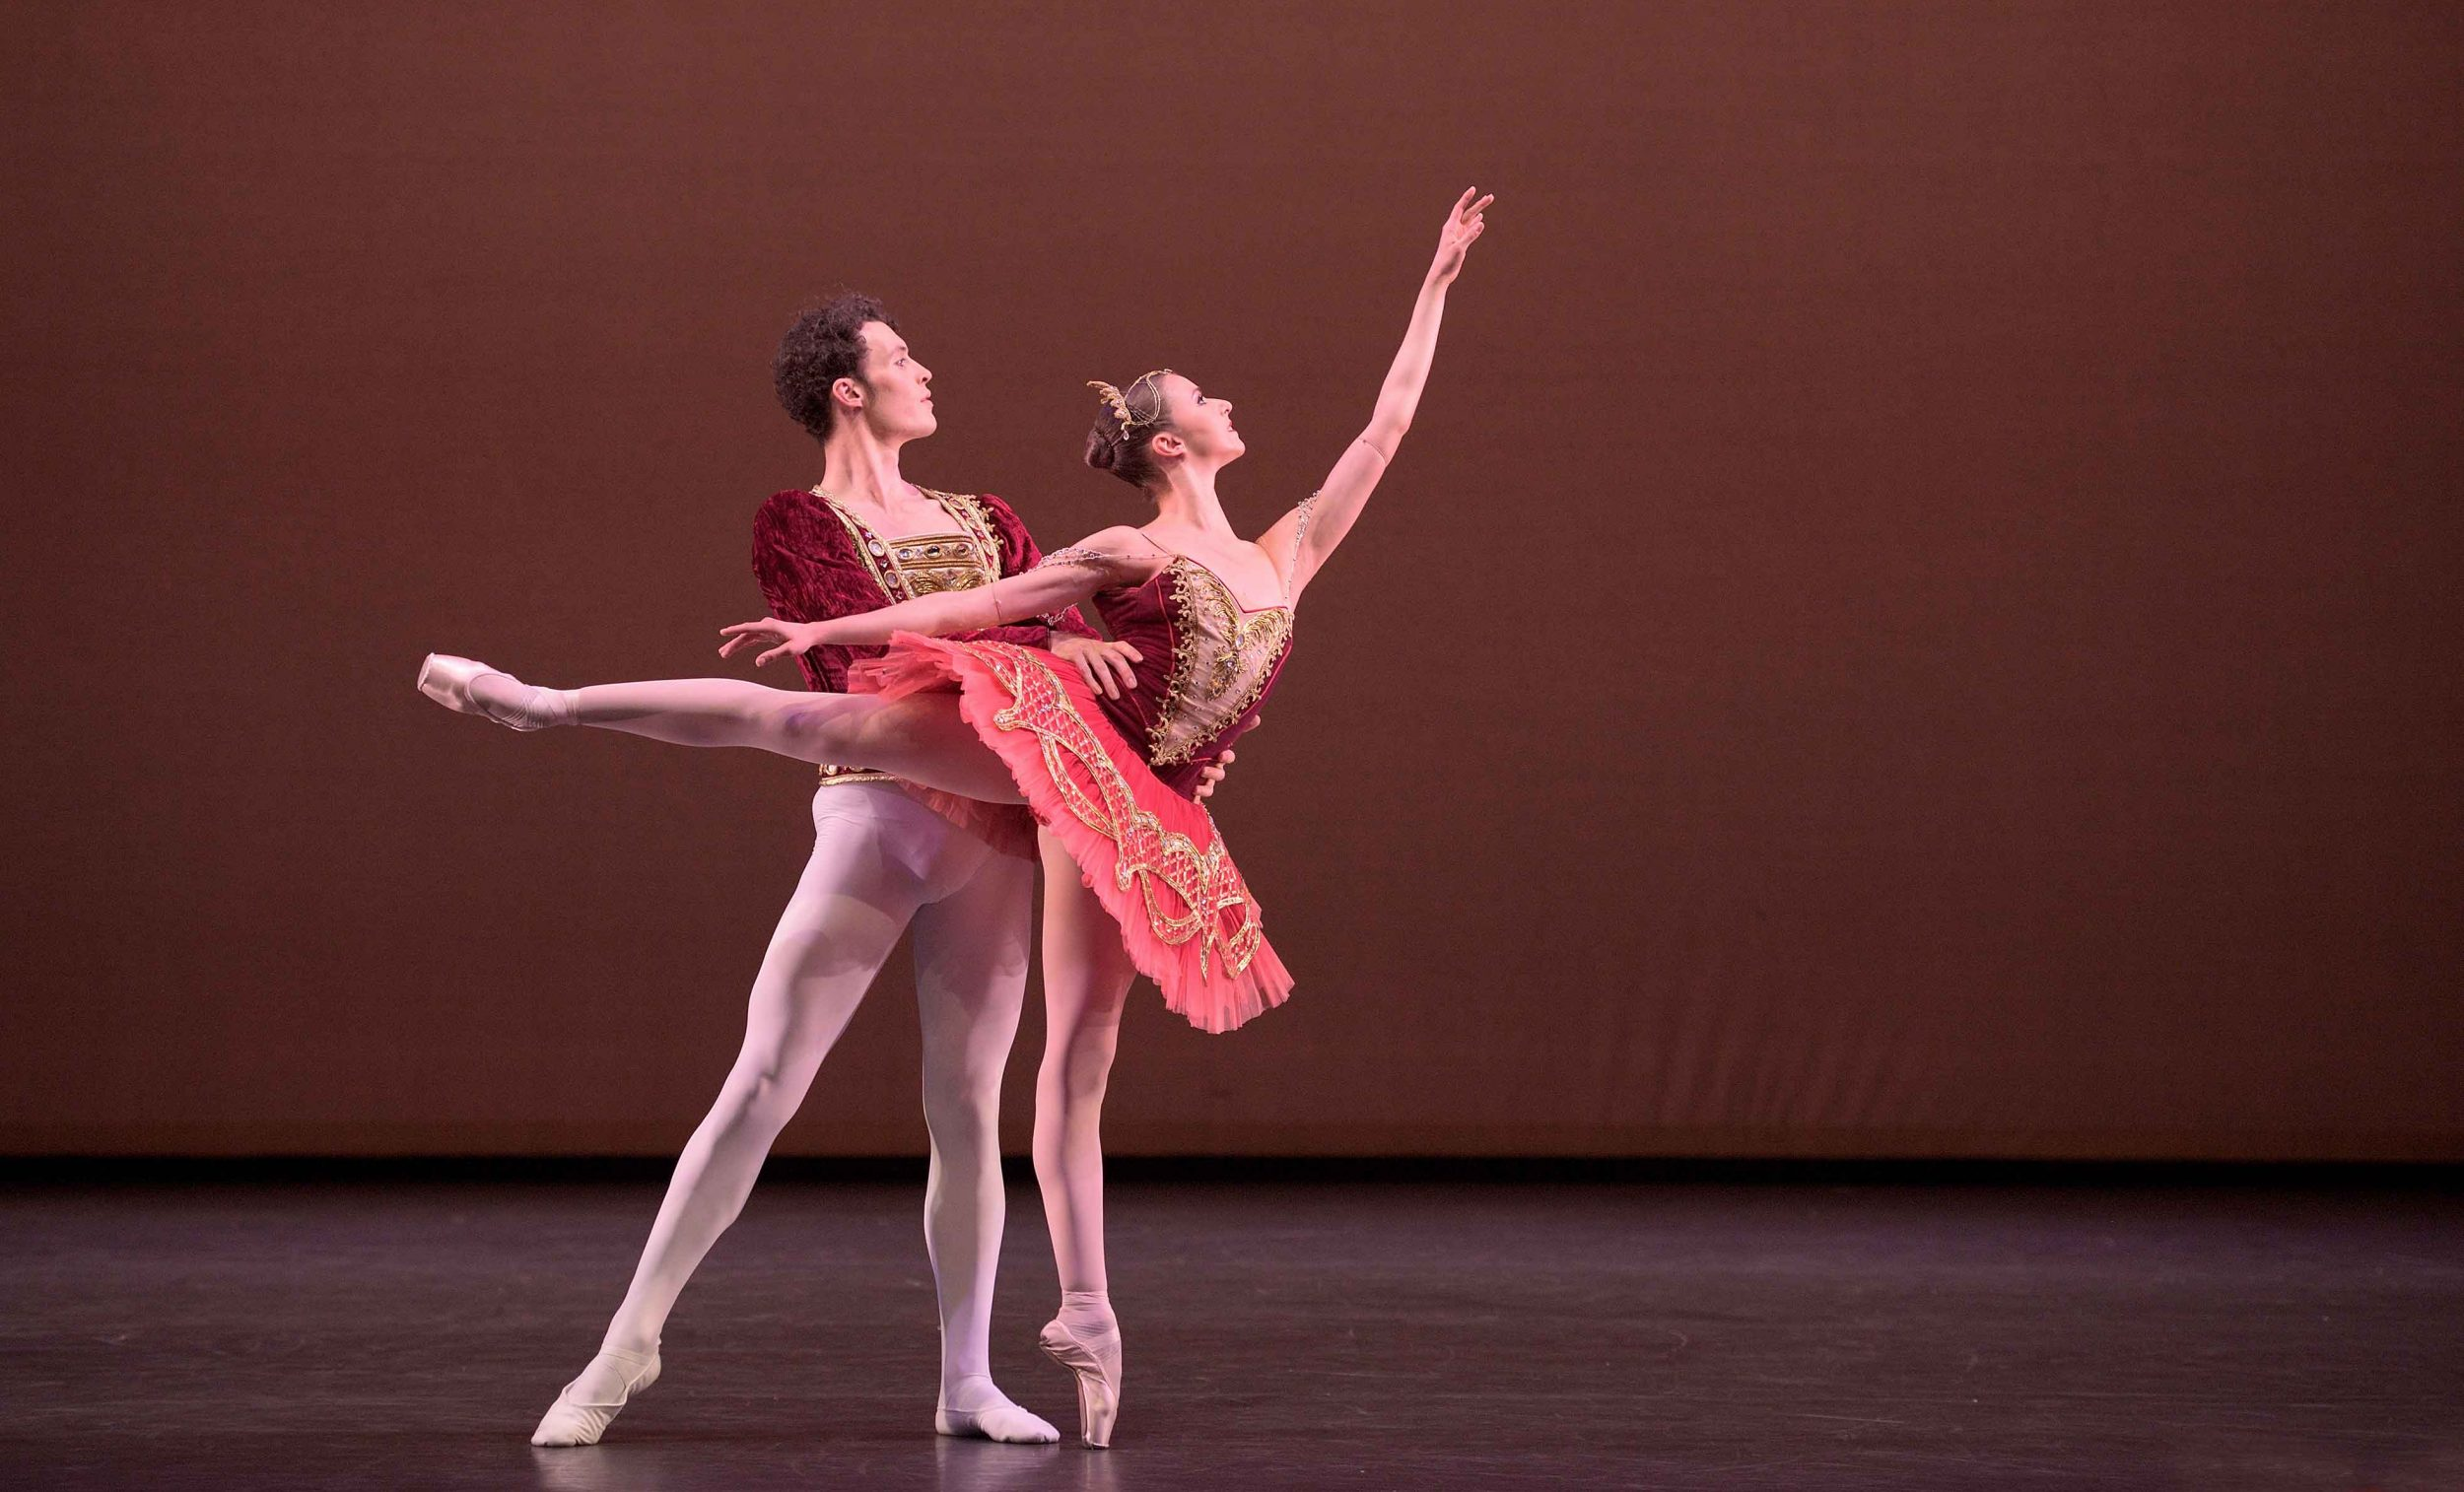 Isabelle-Brouwers-and-Emilio-Pavan-performing-Paquita-©-Laurent-Liotardo--(3)